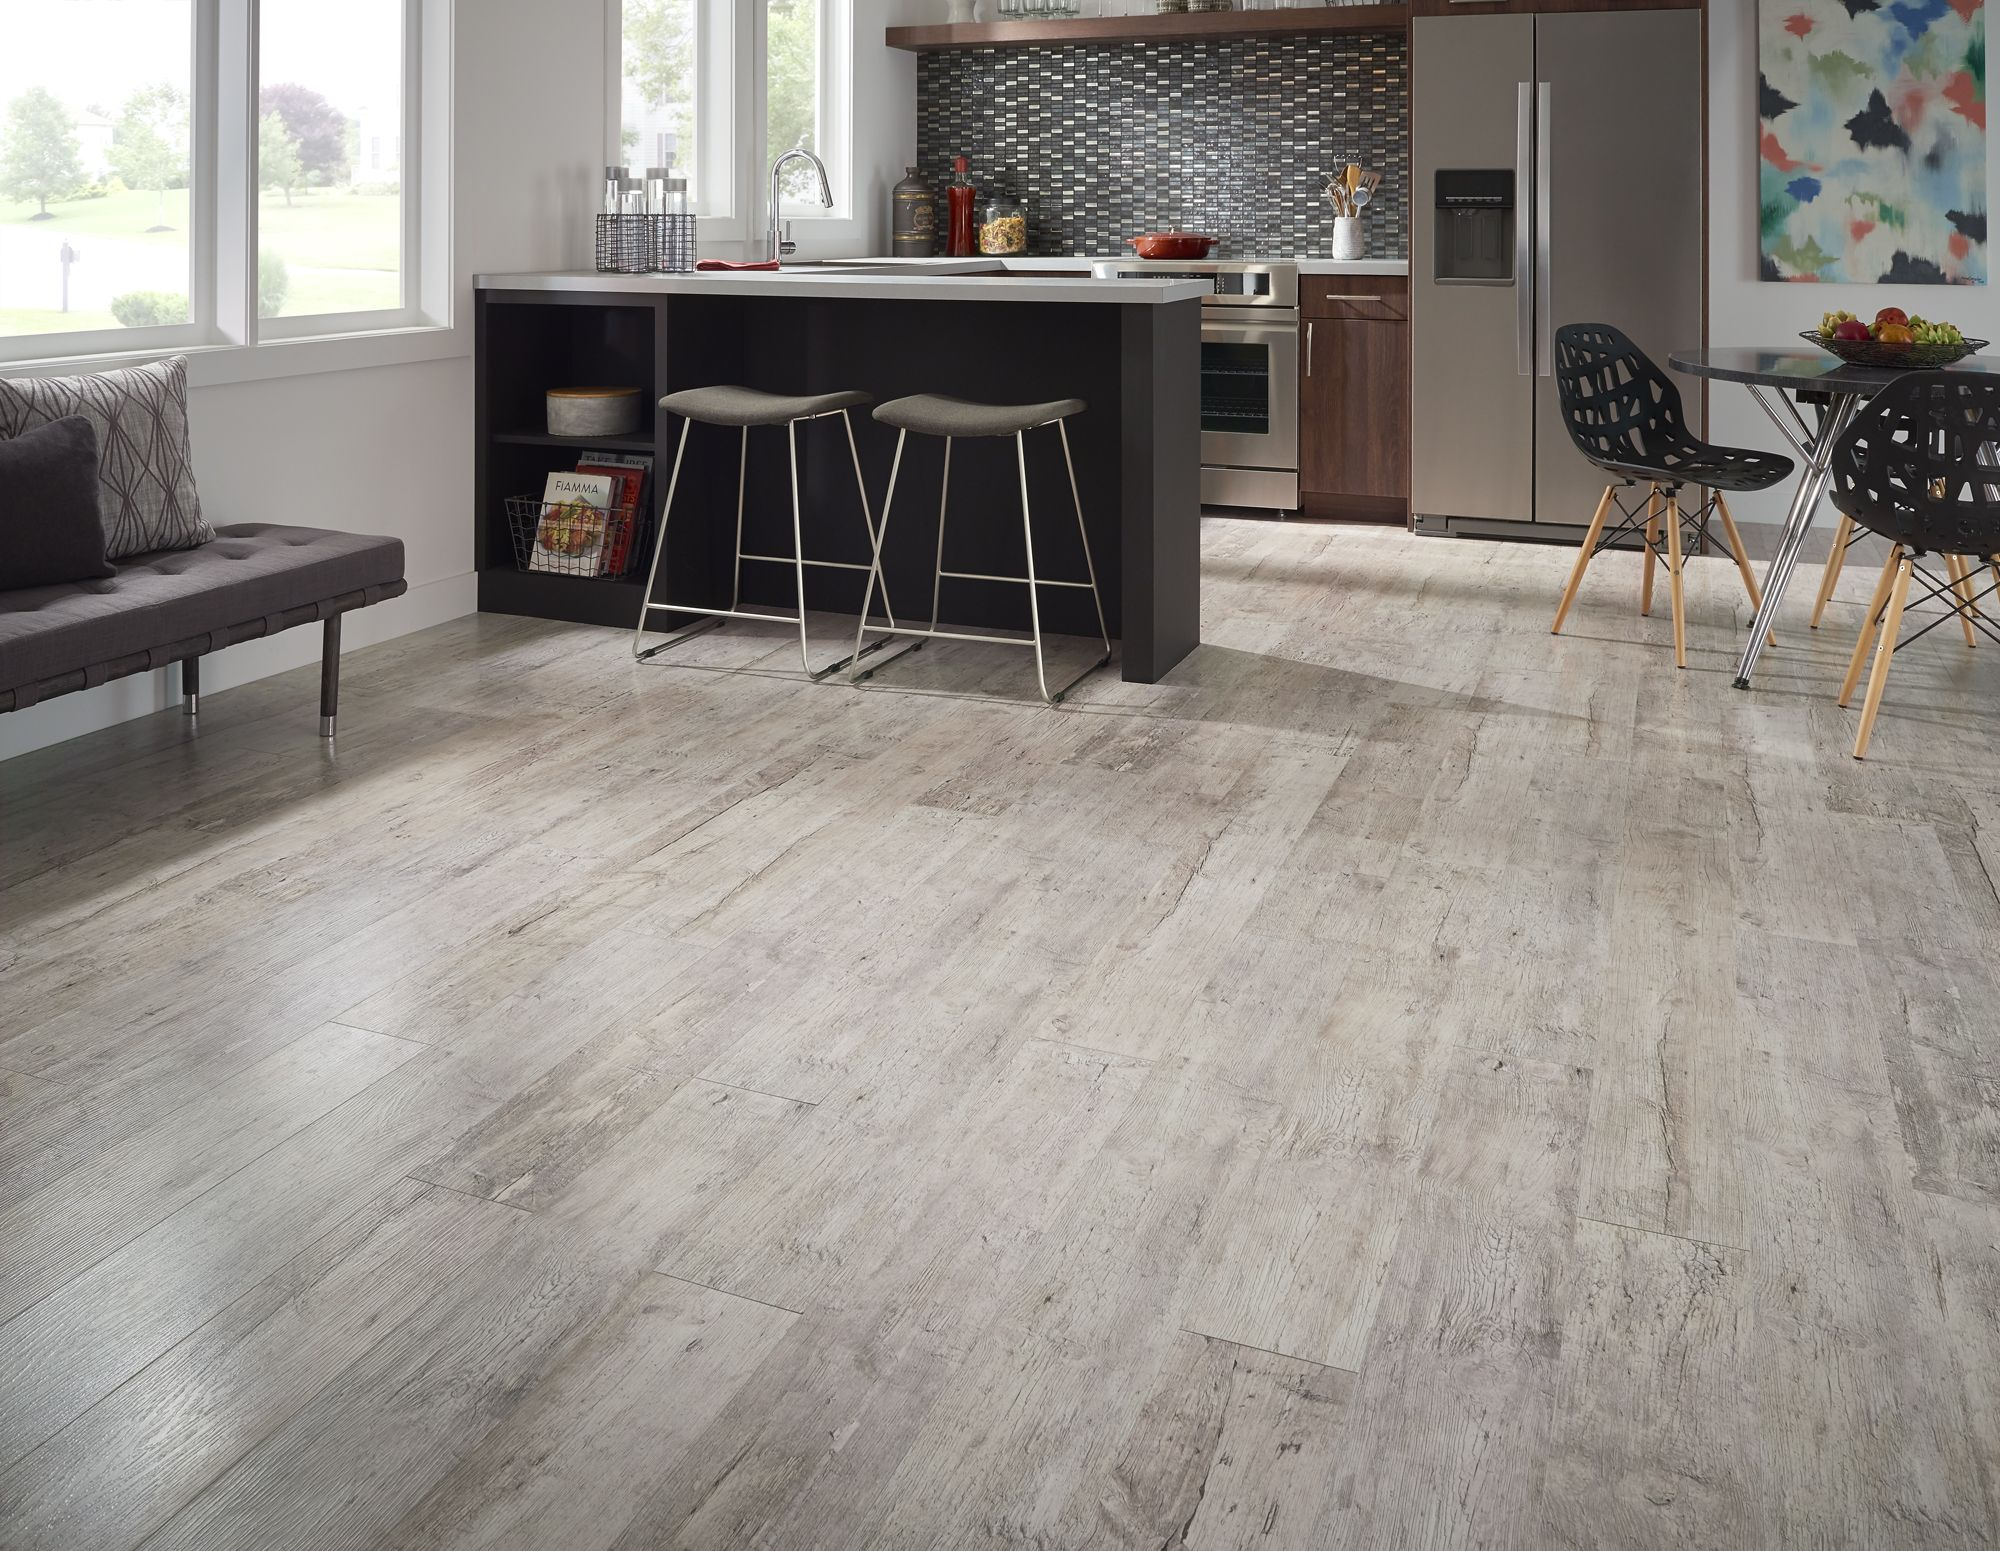 Lumber Liquidators Click Ceramic Plank Tile Flooring is